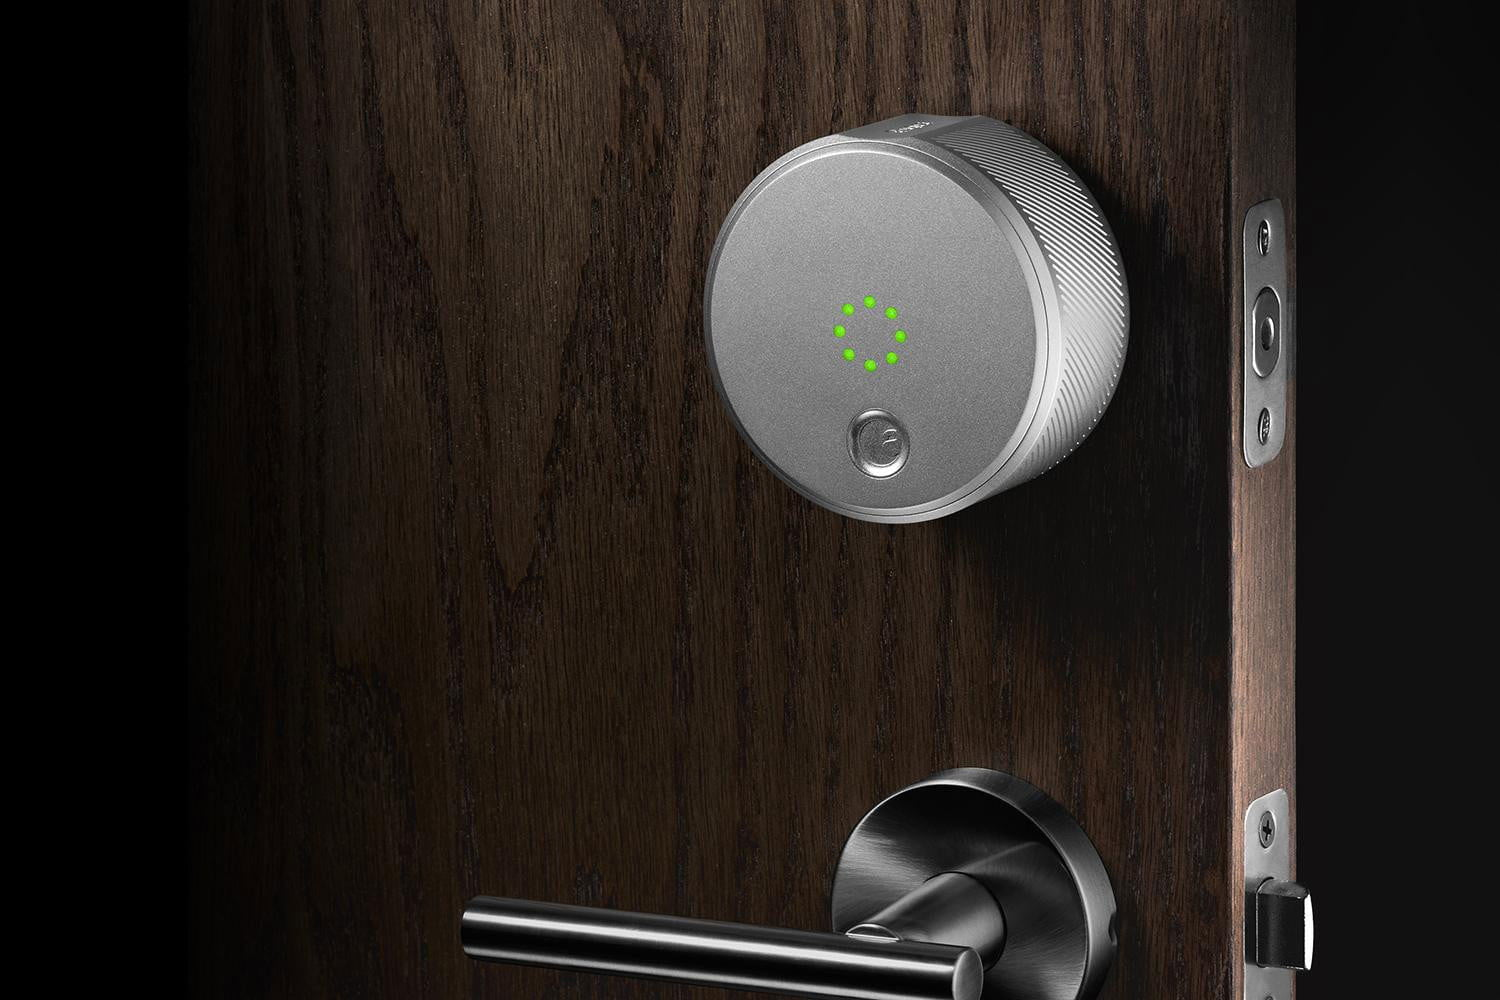 August Smart Lock Pro+ Connect